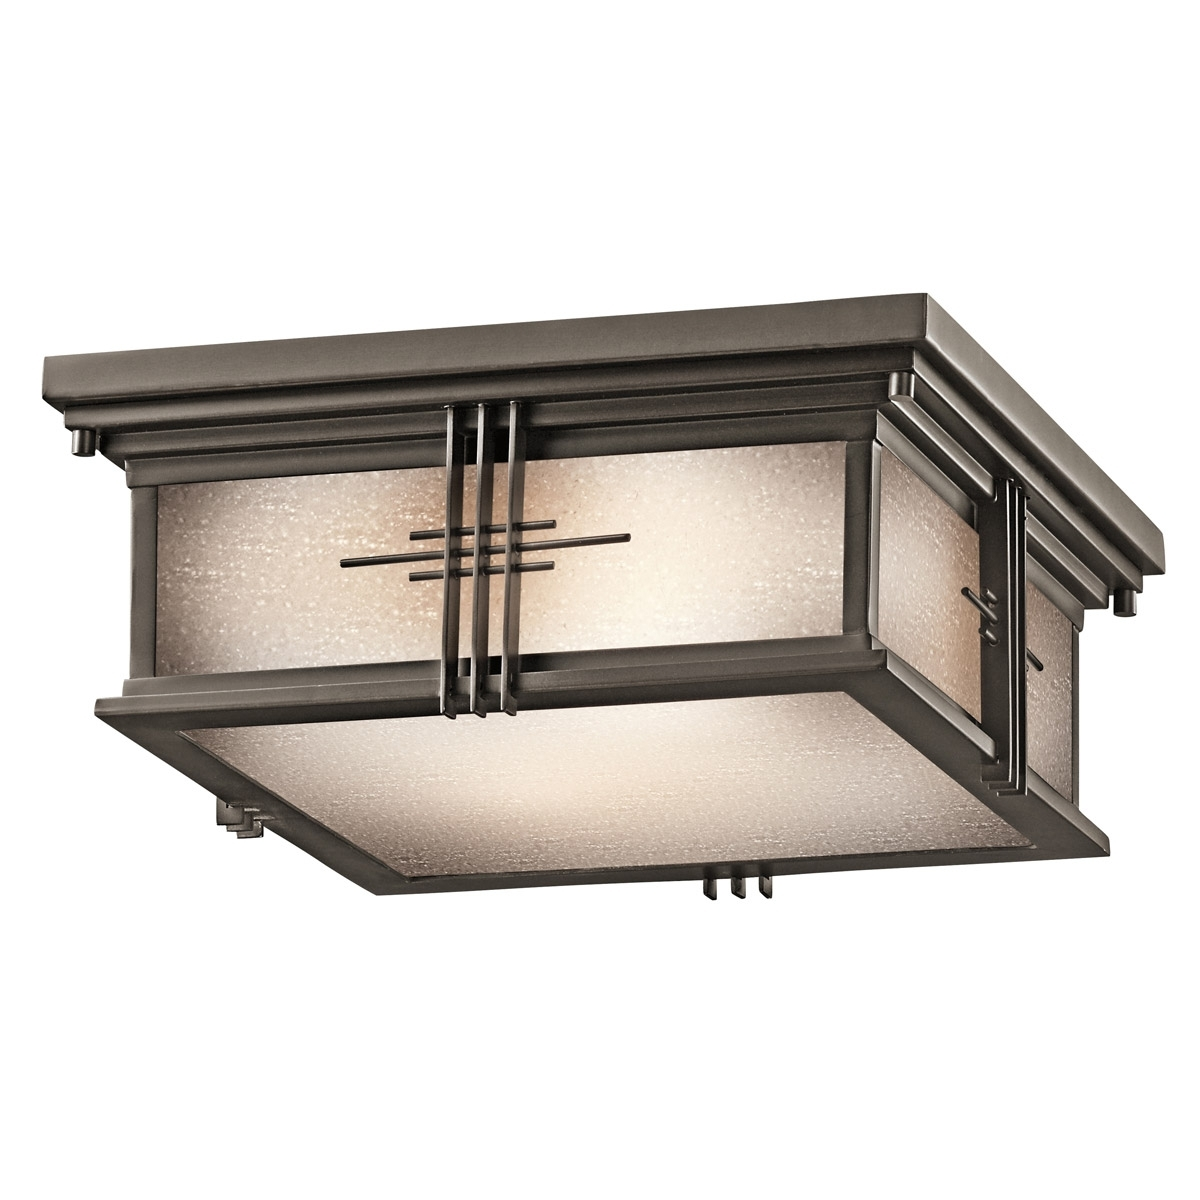 49164Oz Portman Square Outdoor Flush Mount Ceiling Fixture Inside Latest Rustic Outdoor Ceiling Lights (View 2 of 20)